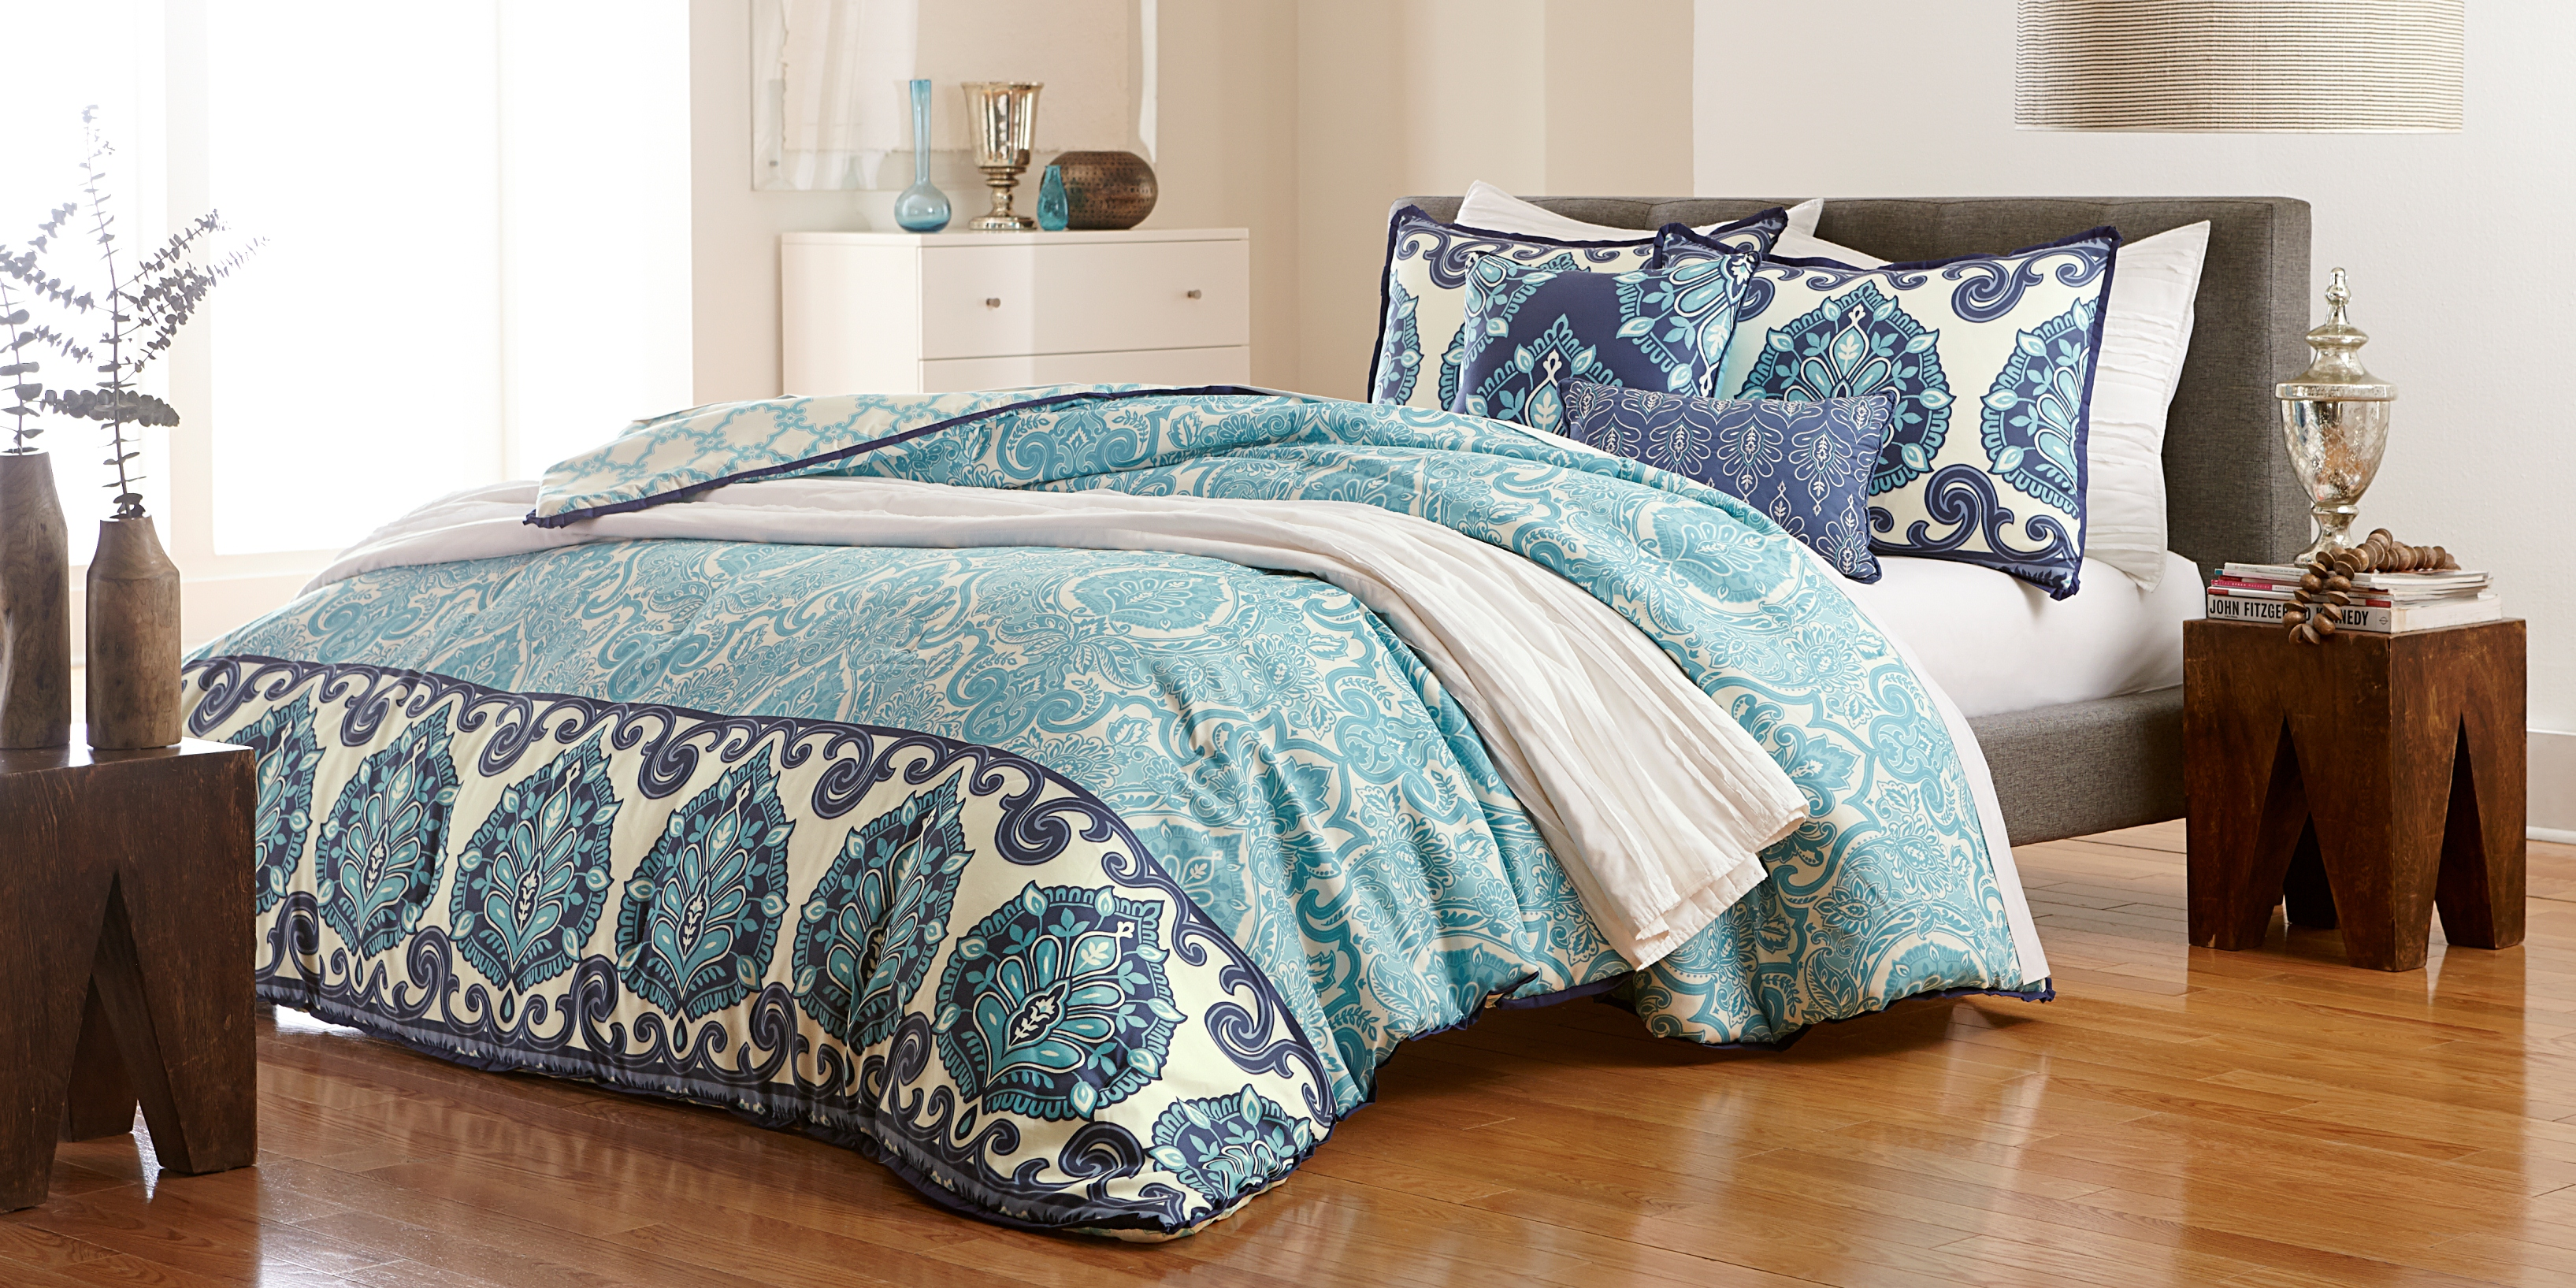 Queen Size Bedding Sets | Duvet Covers Target | Queen Size Bed In A Bag Sets